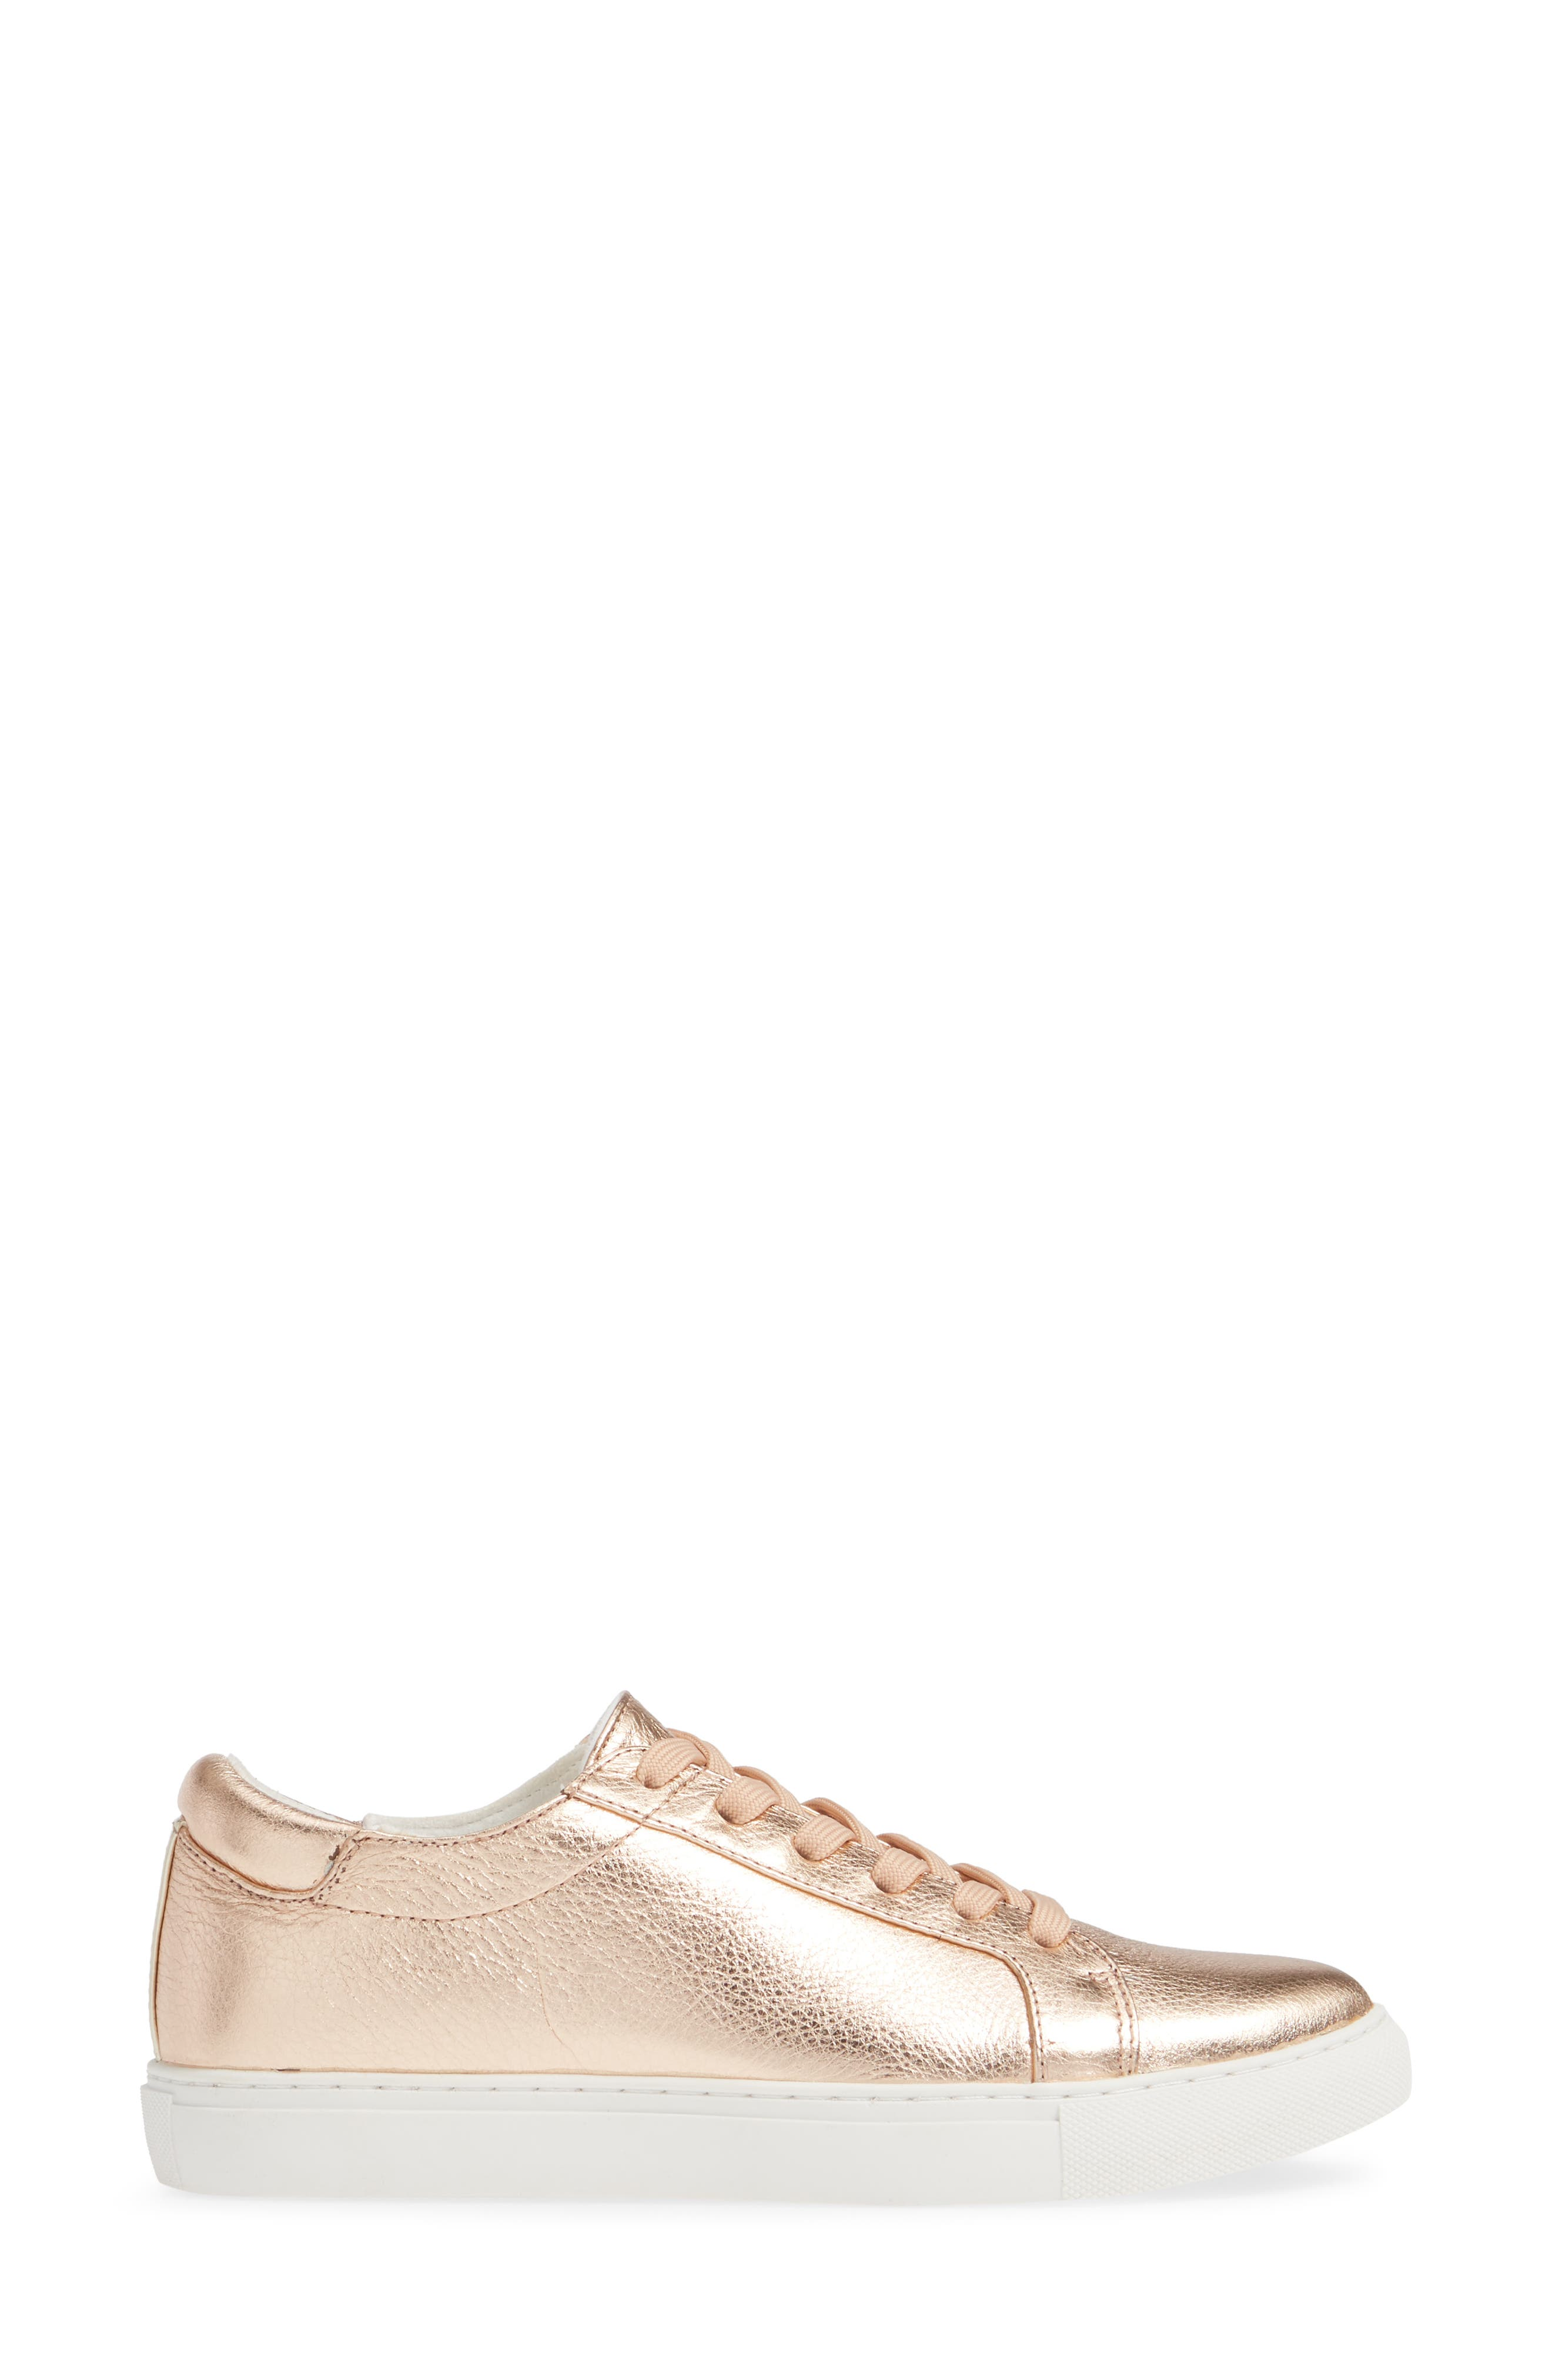 KENNETH COLE NEW YORK, 'Kam' Sneaker, Alternate thumbnail 3, color, ROSE GOLD LEATHER